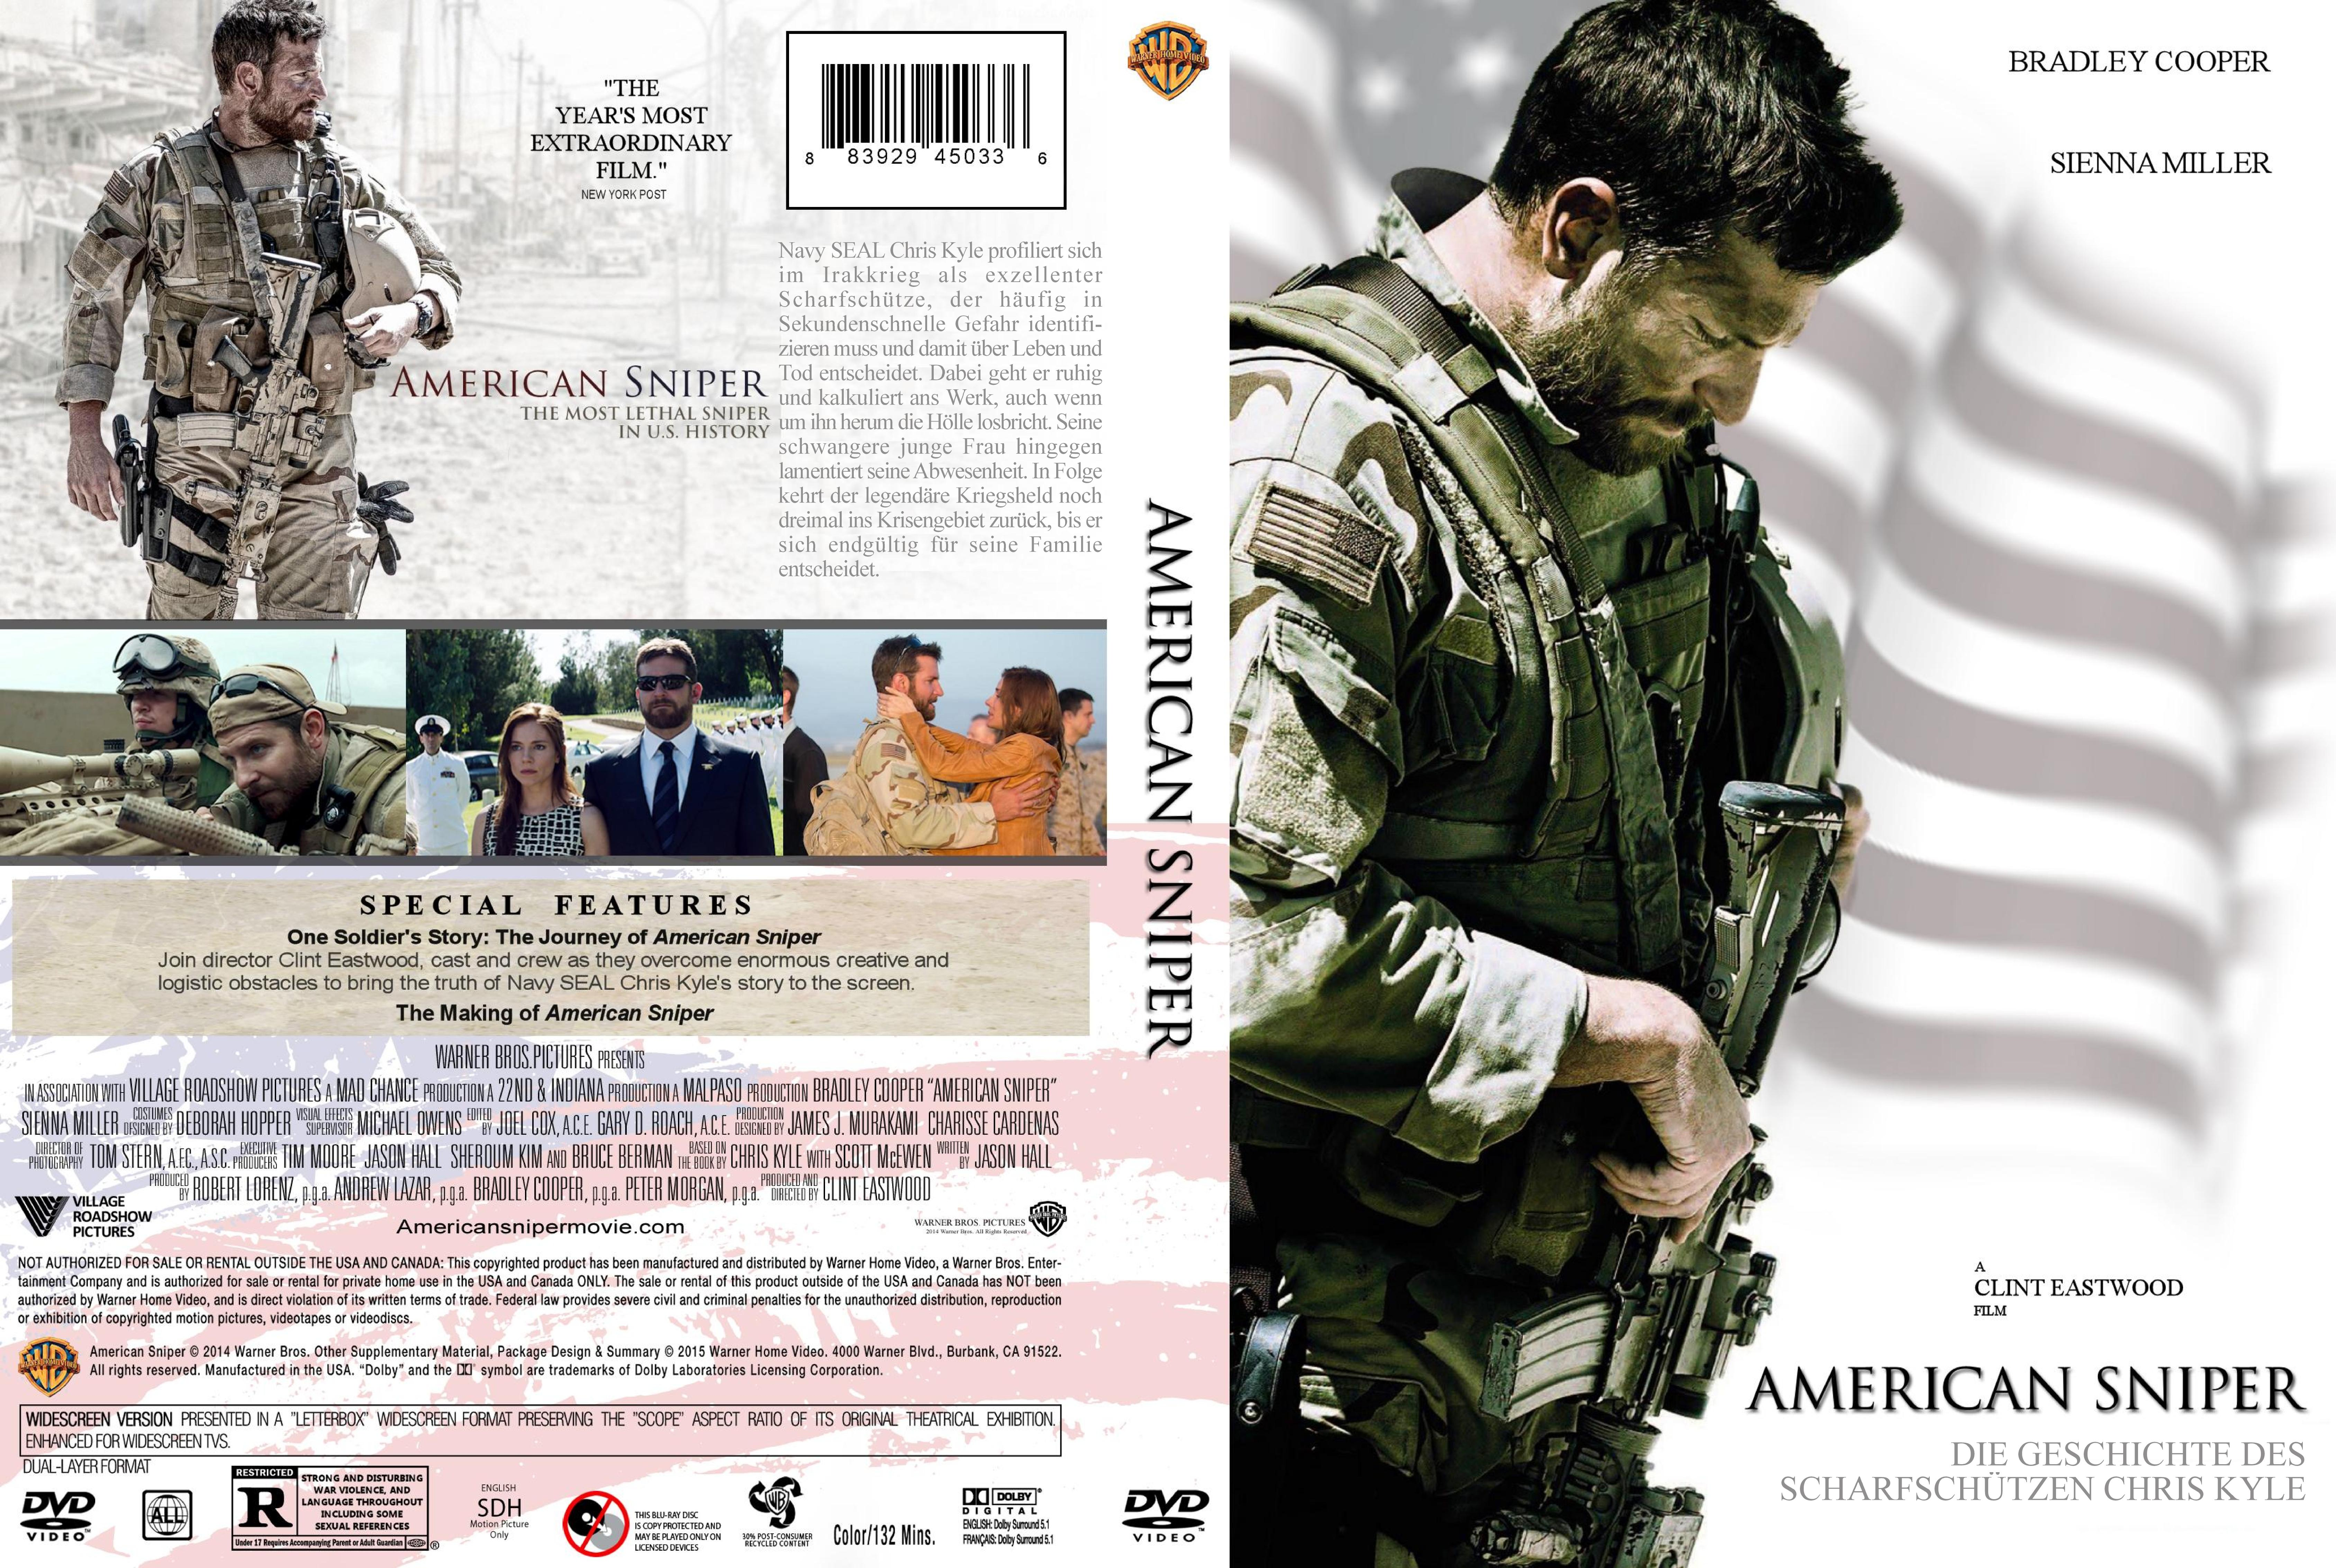 american sniper dvd cover version 2 | DVD Covers | Cover